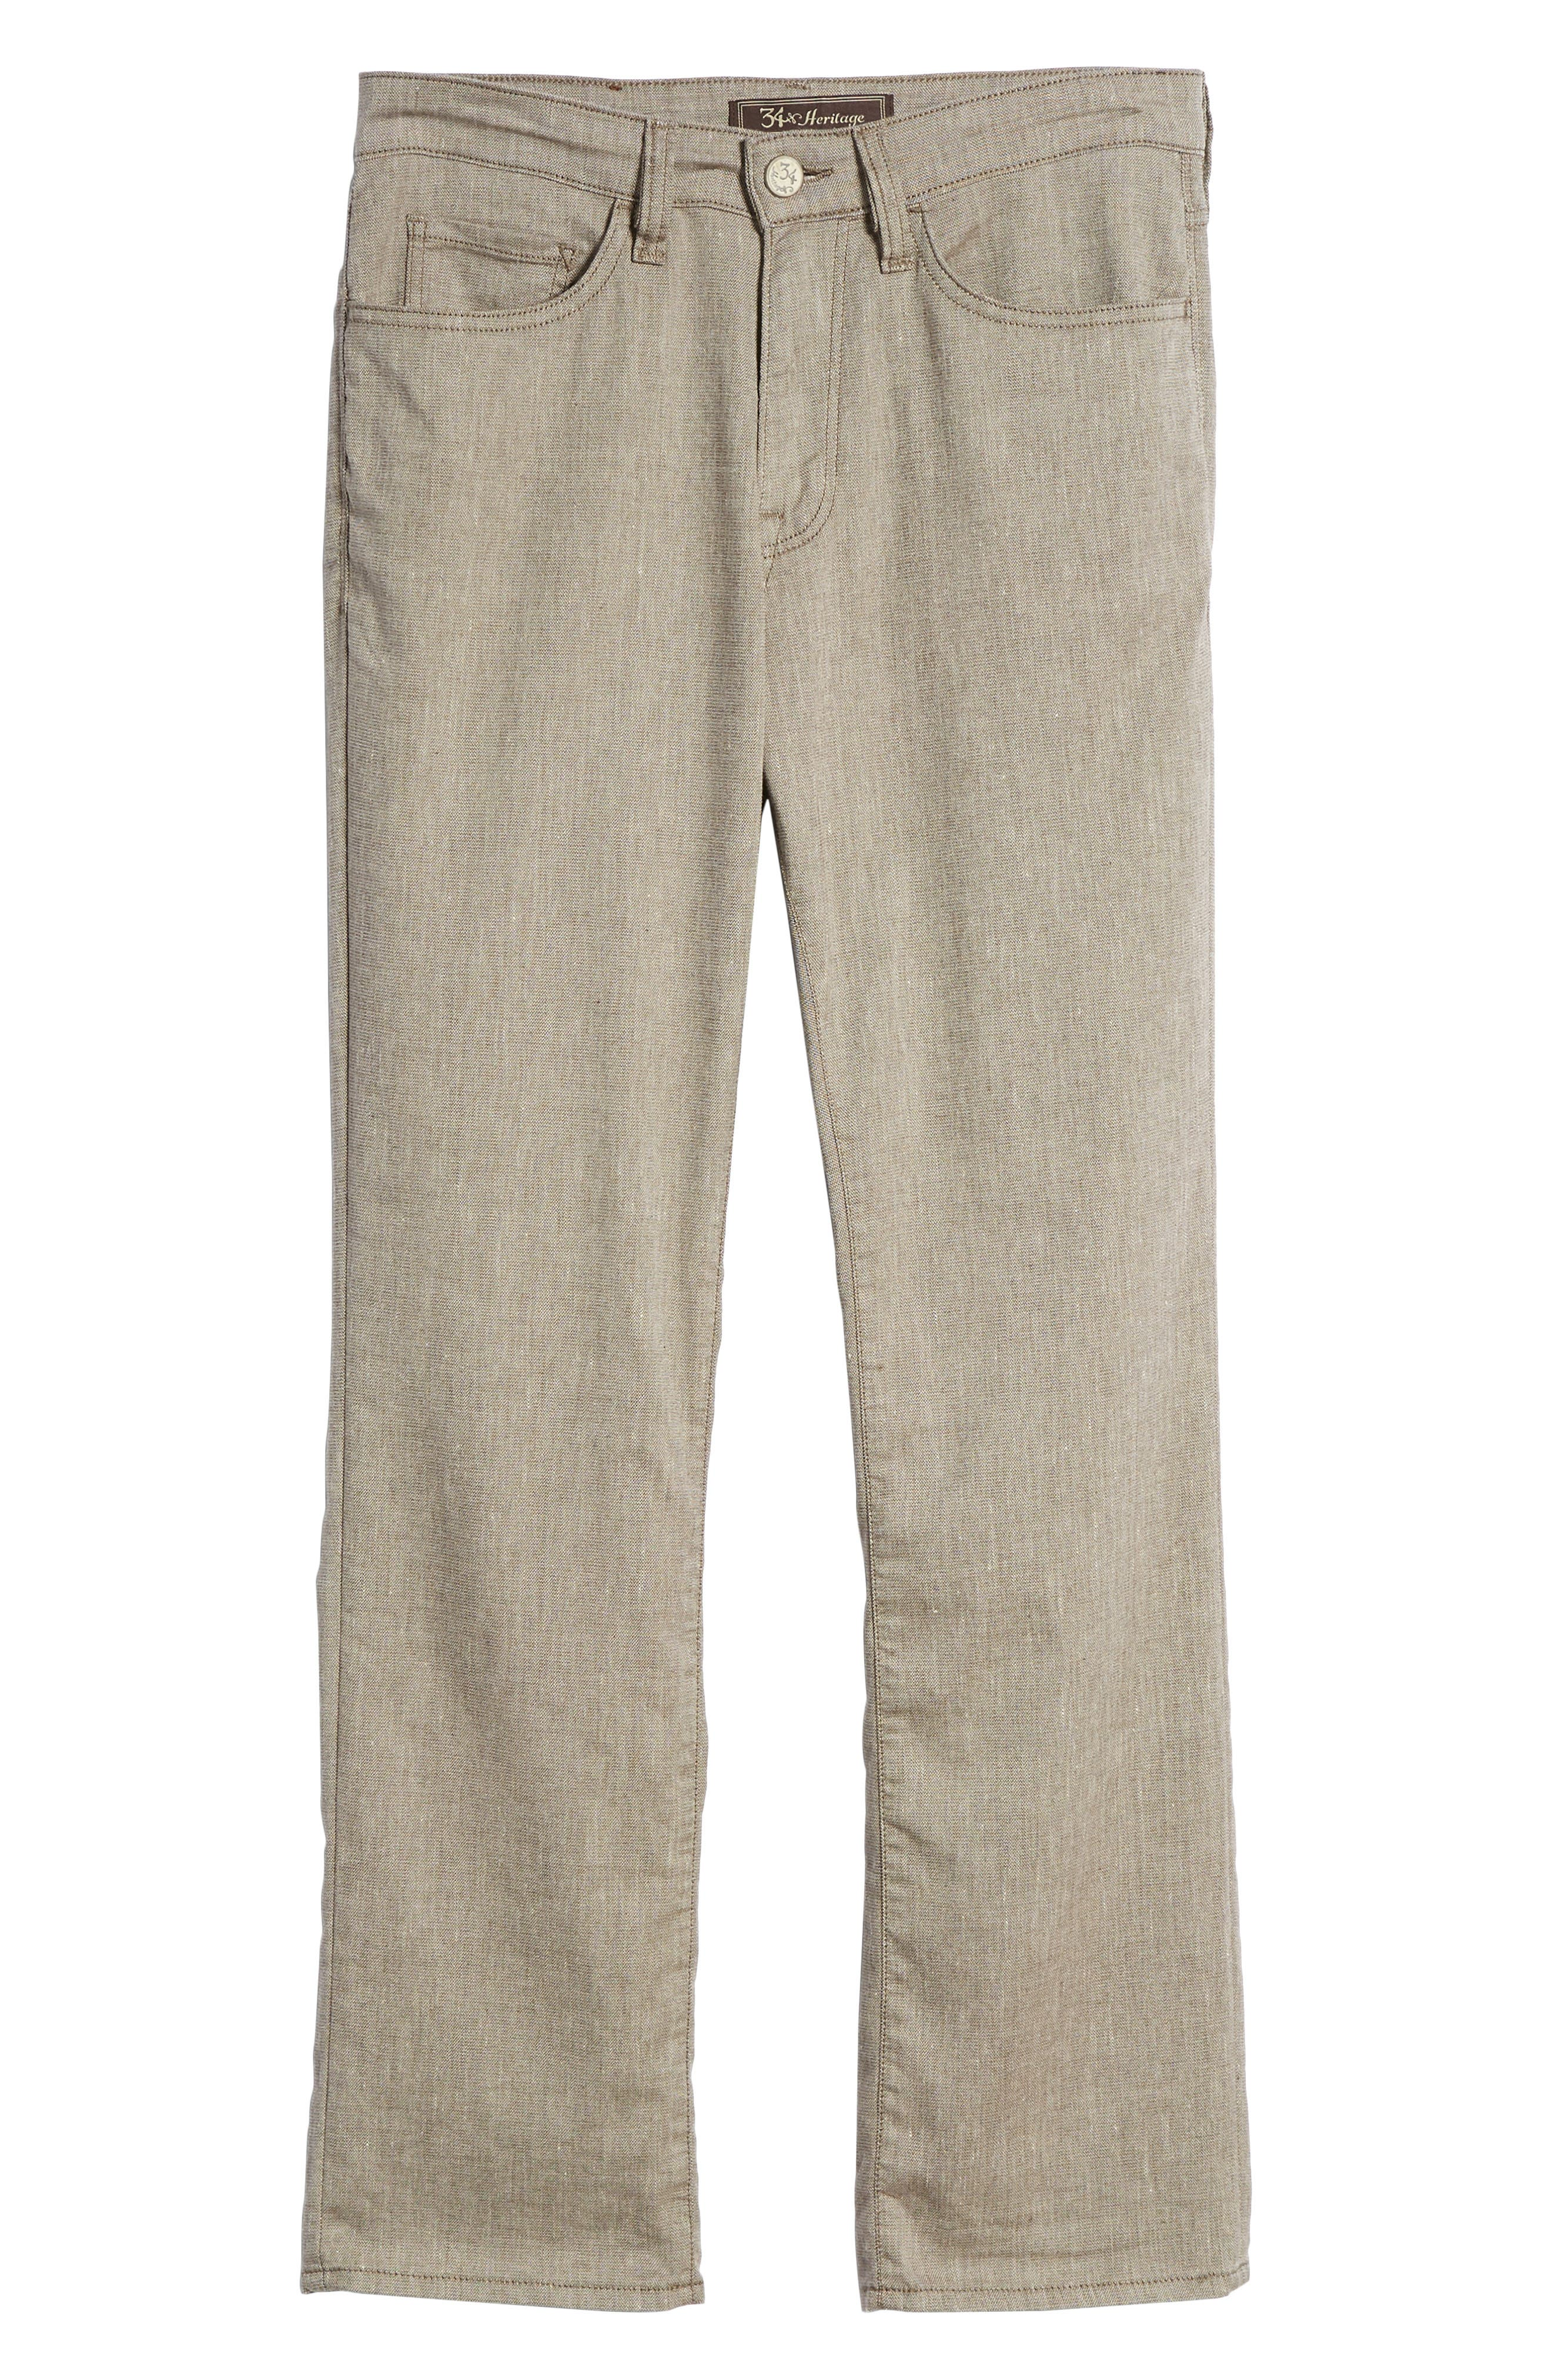 Charisma Relaxed Fit Pants,                             Alternate thumbnail 6, color,                             Latte Textured